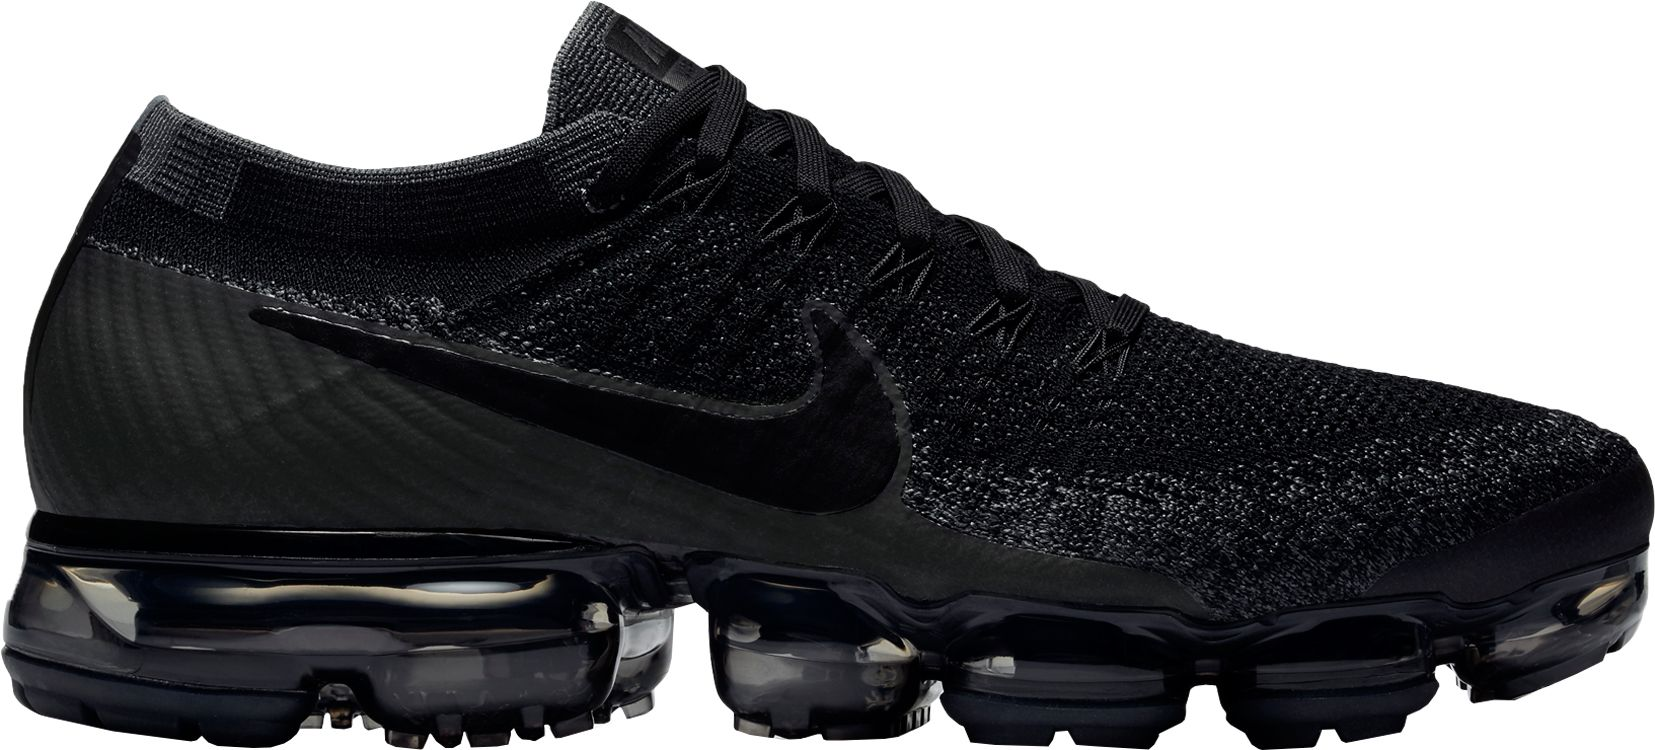 CLOT x Nike Air VaporMax Flyknit On Feet Cheap Air Vapormax